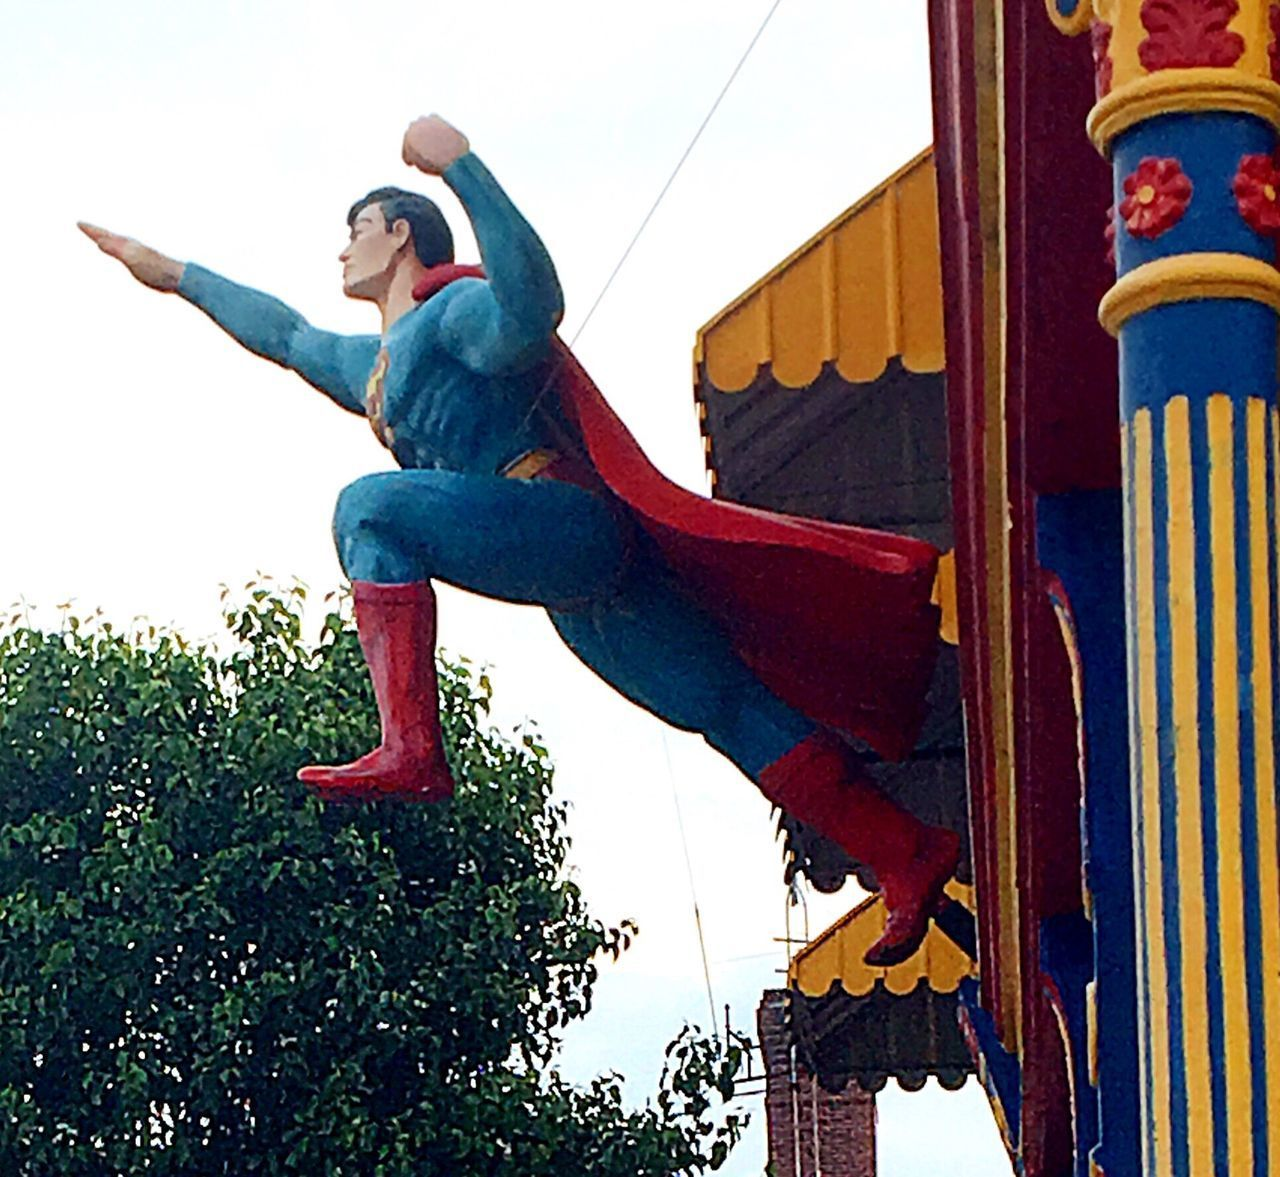 Look, up in the sky Superman Day Low Angle View Outdoors Sky statue art Metropolis flying hero